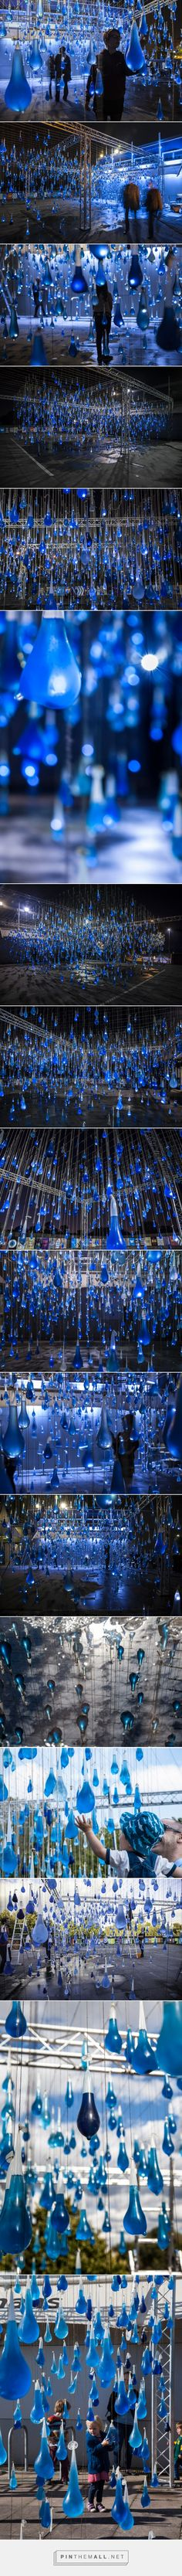 Rain Interactive Installation by Luzinterruptus — urdesignmag... - a grouped images picture - Pin Them All